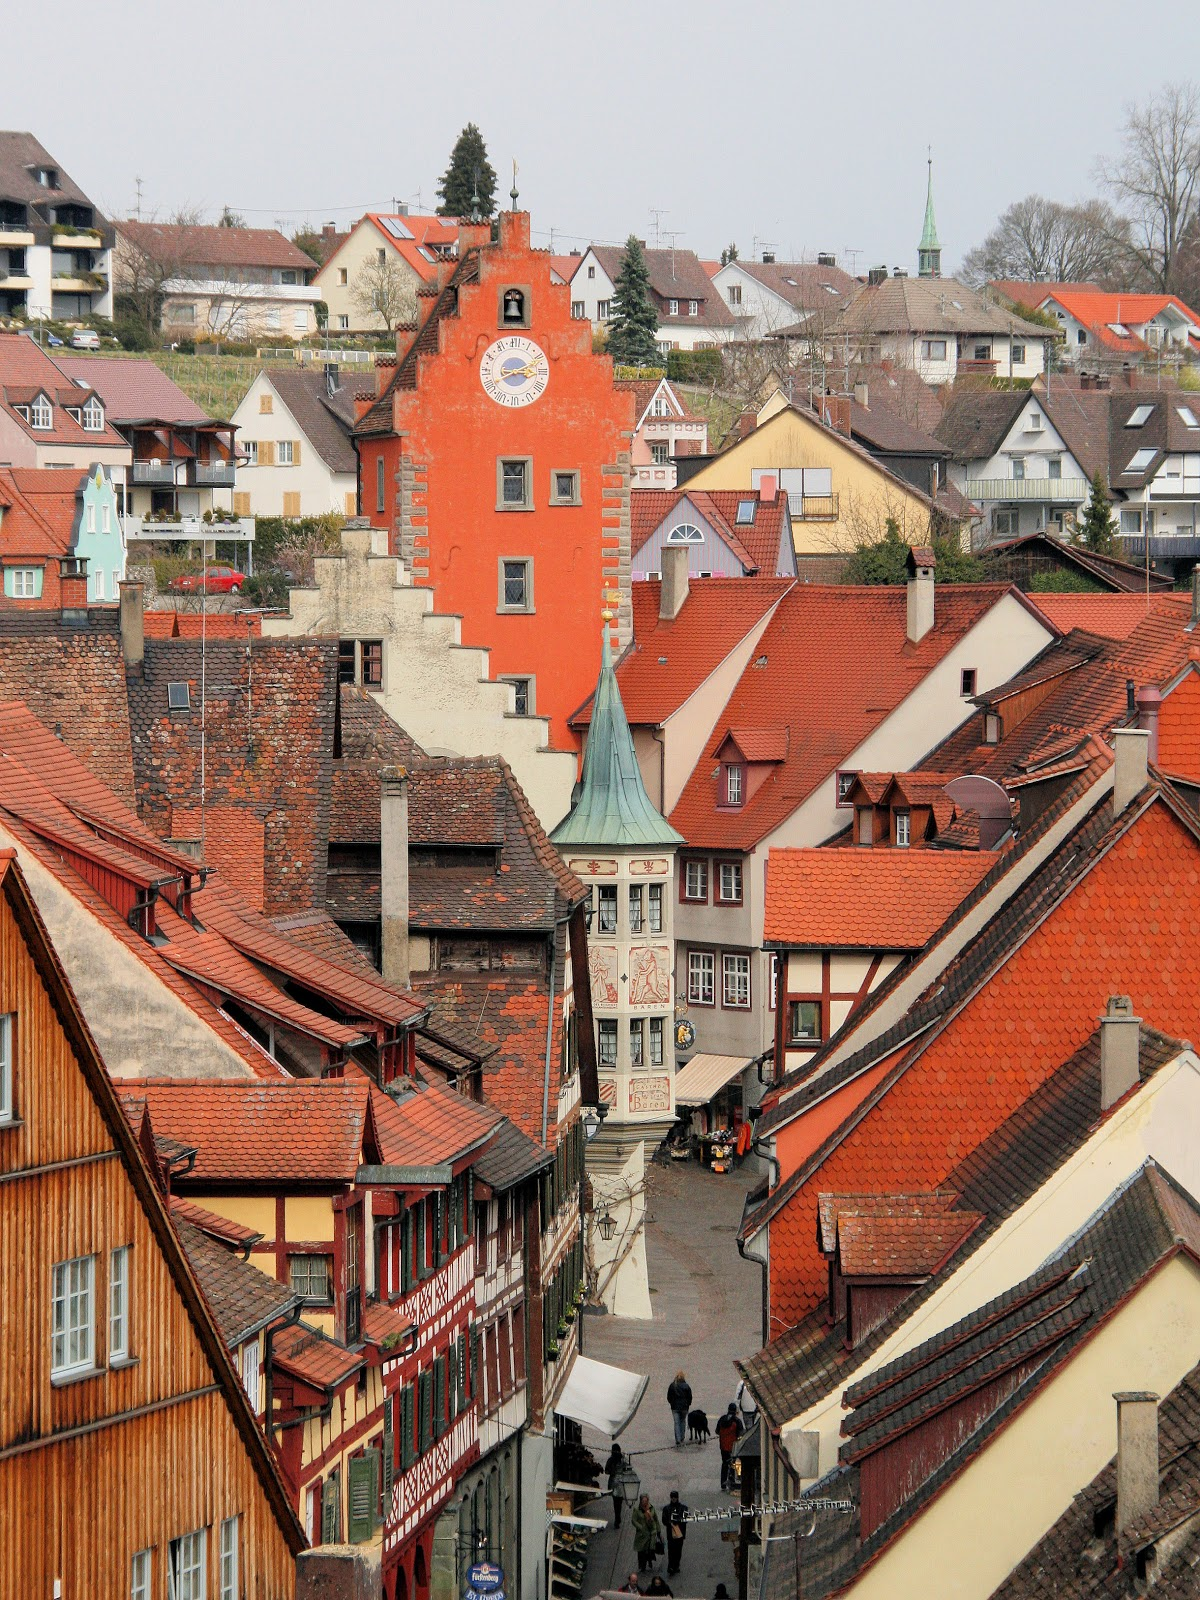 Meersburg is split into the 'Unterstadt' or lower town and the 'Oberstadt' or upper town. Photo: WikiMedia.org.